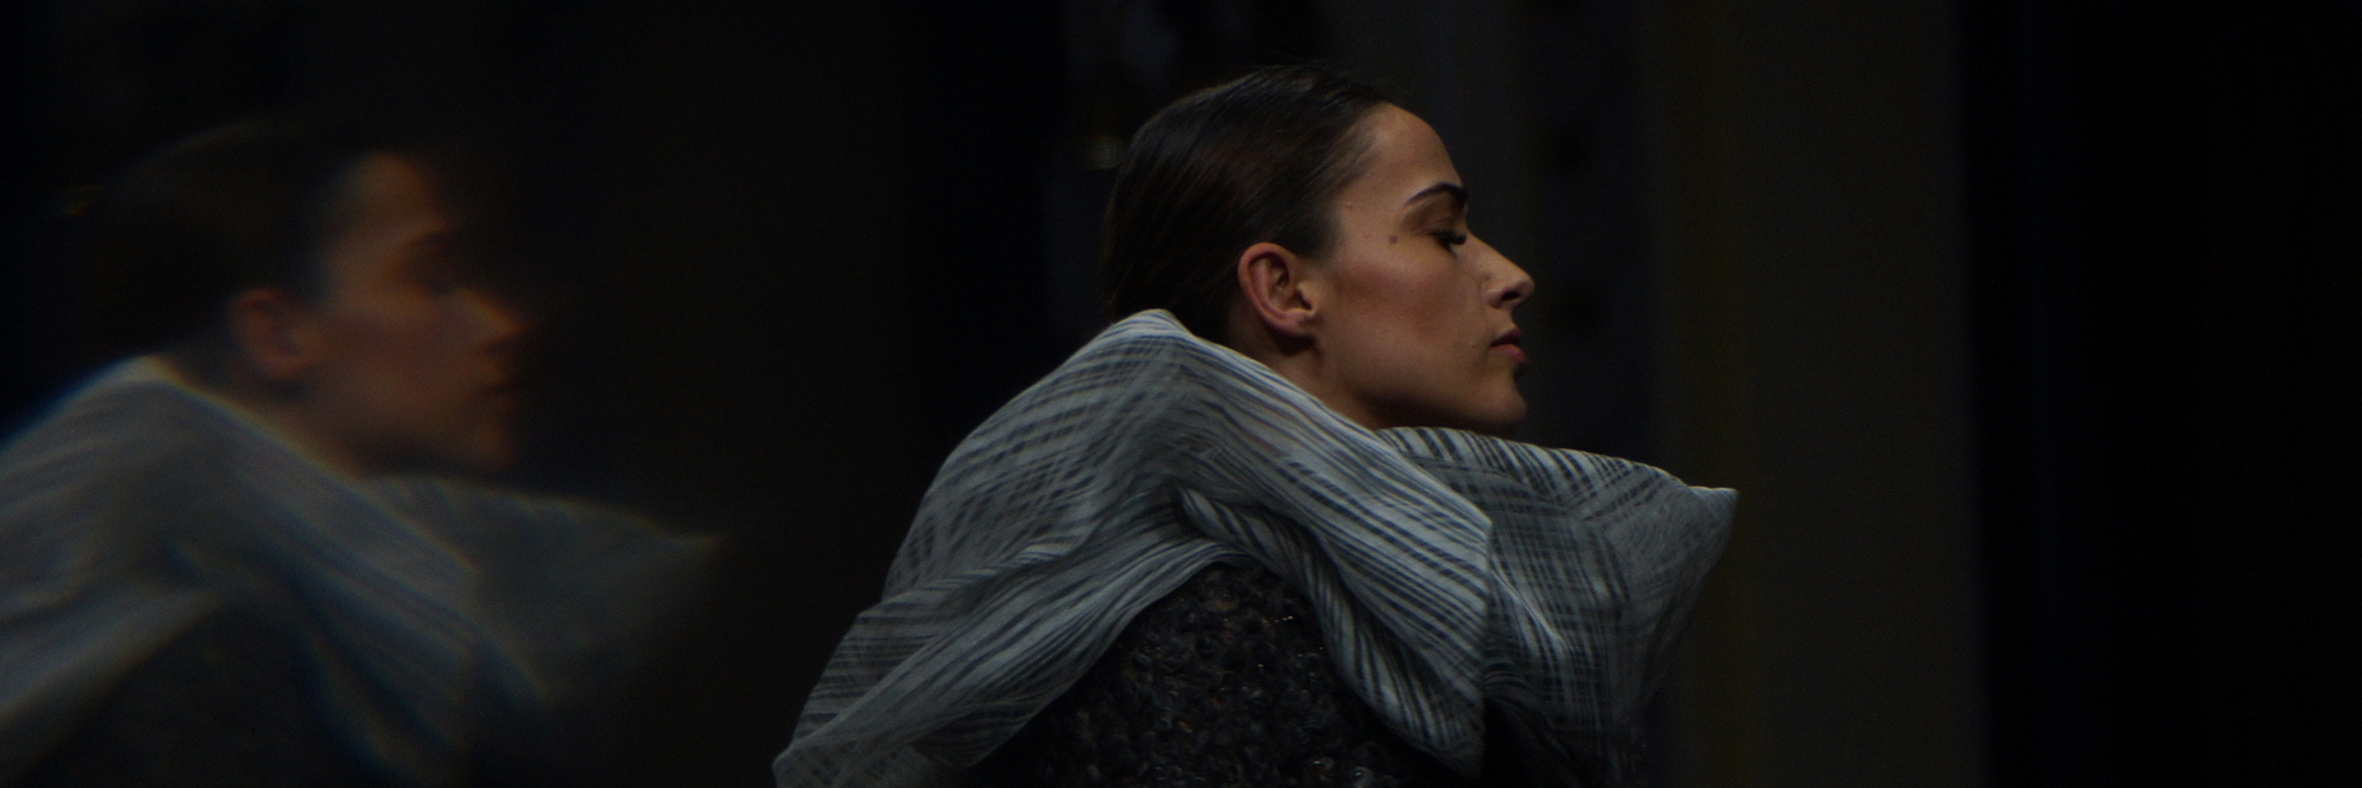 Symphony - Chic by Vali Cioban A/W 19-20 Collection